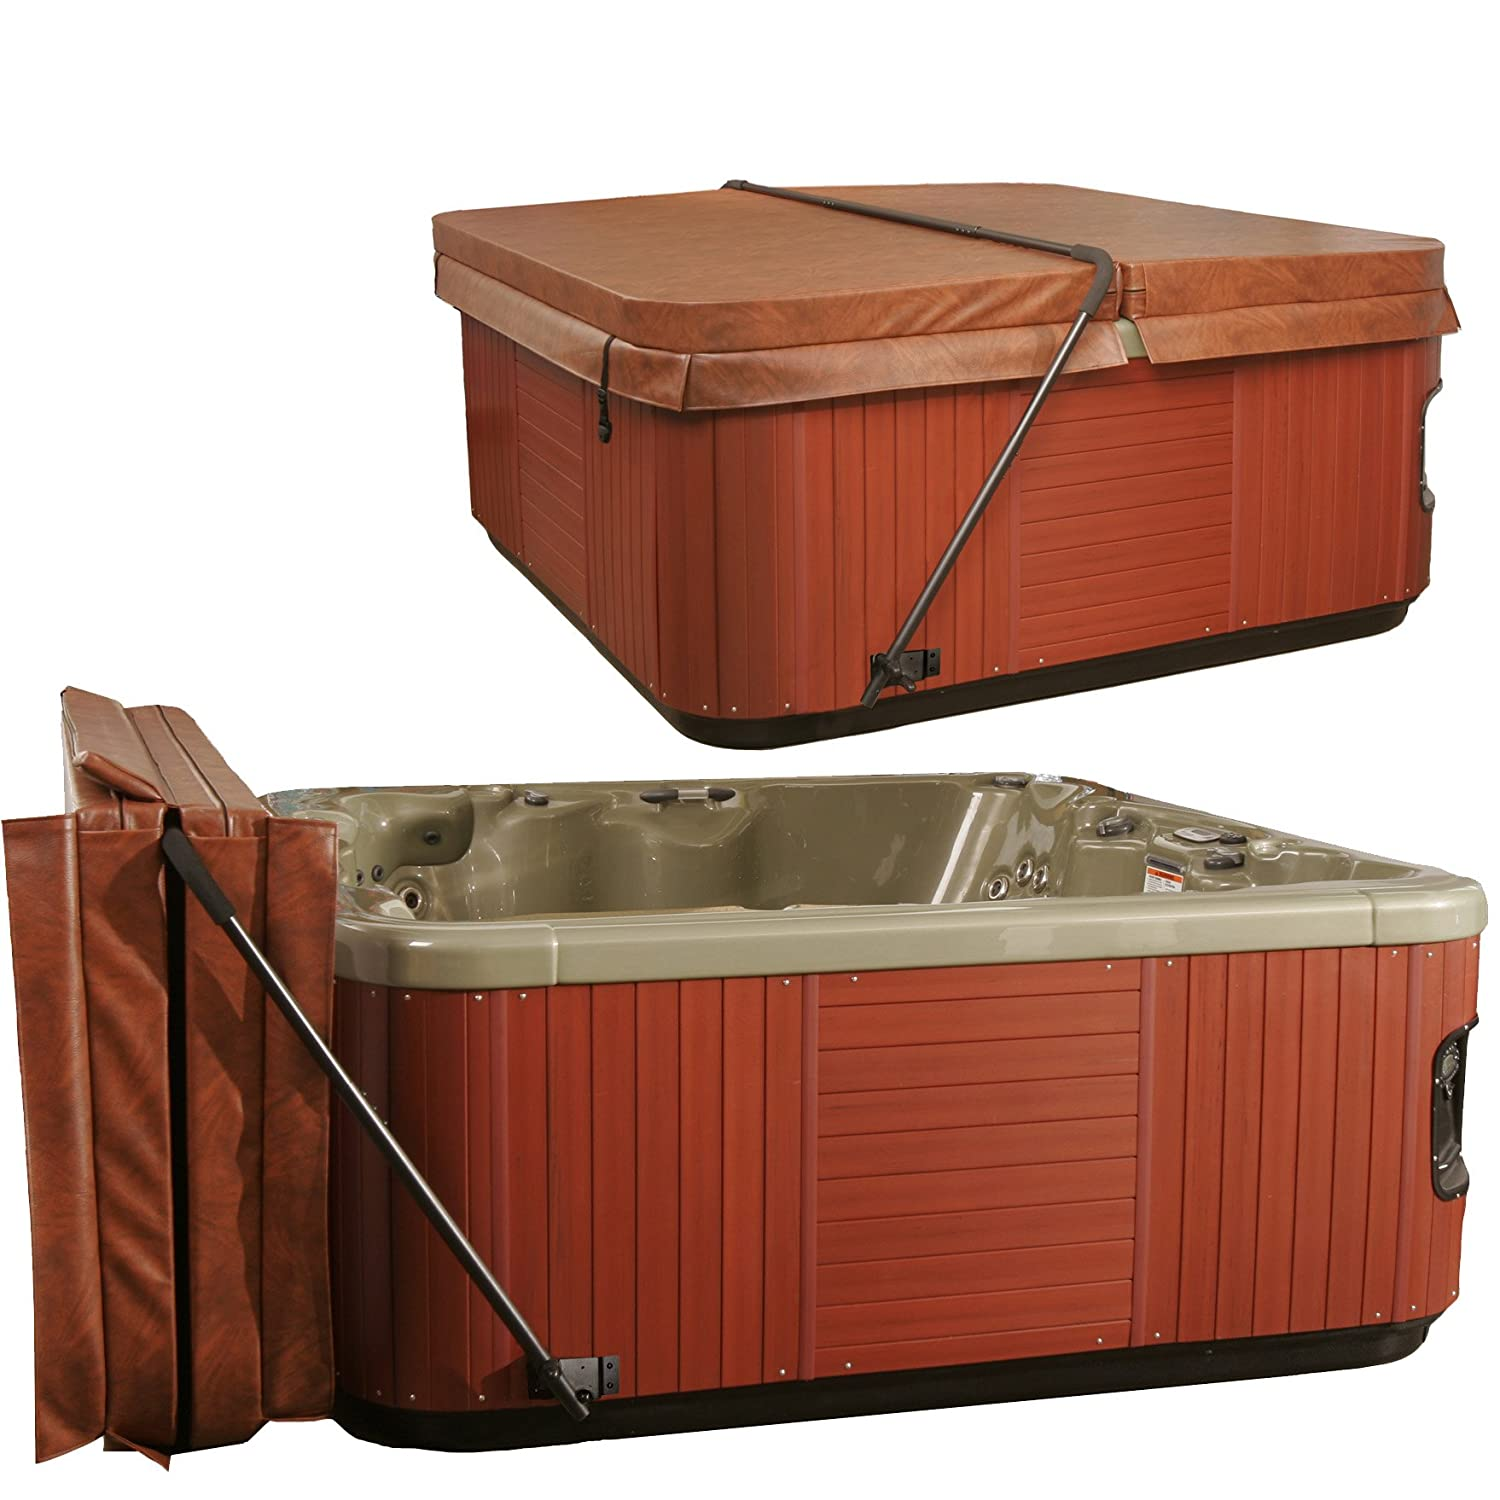 spa custom ultra hot your taper design base sale deluxe tub foam a for cover with make r covers own